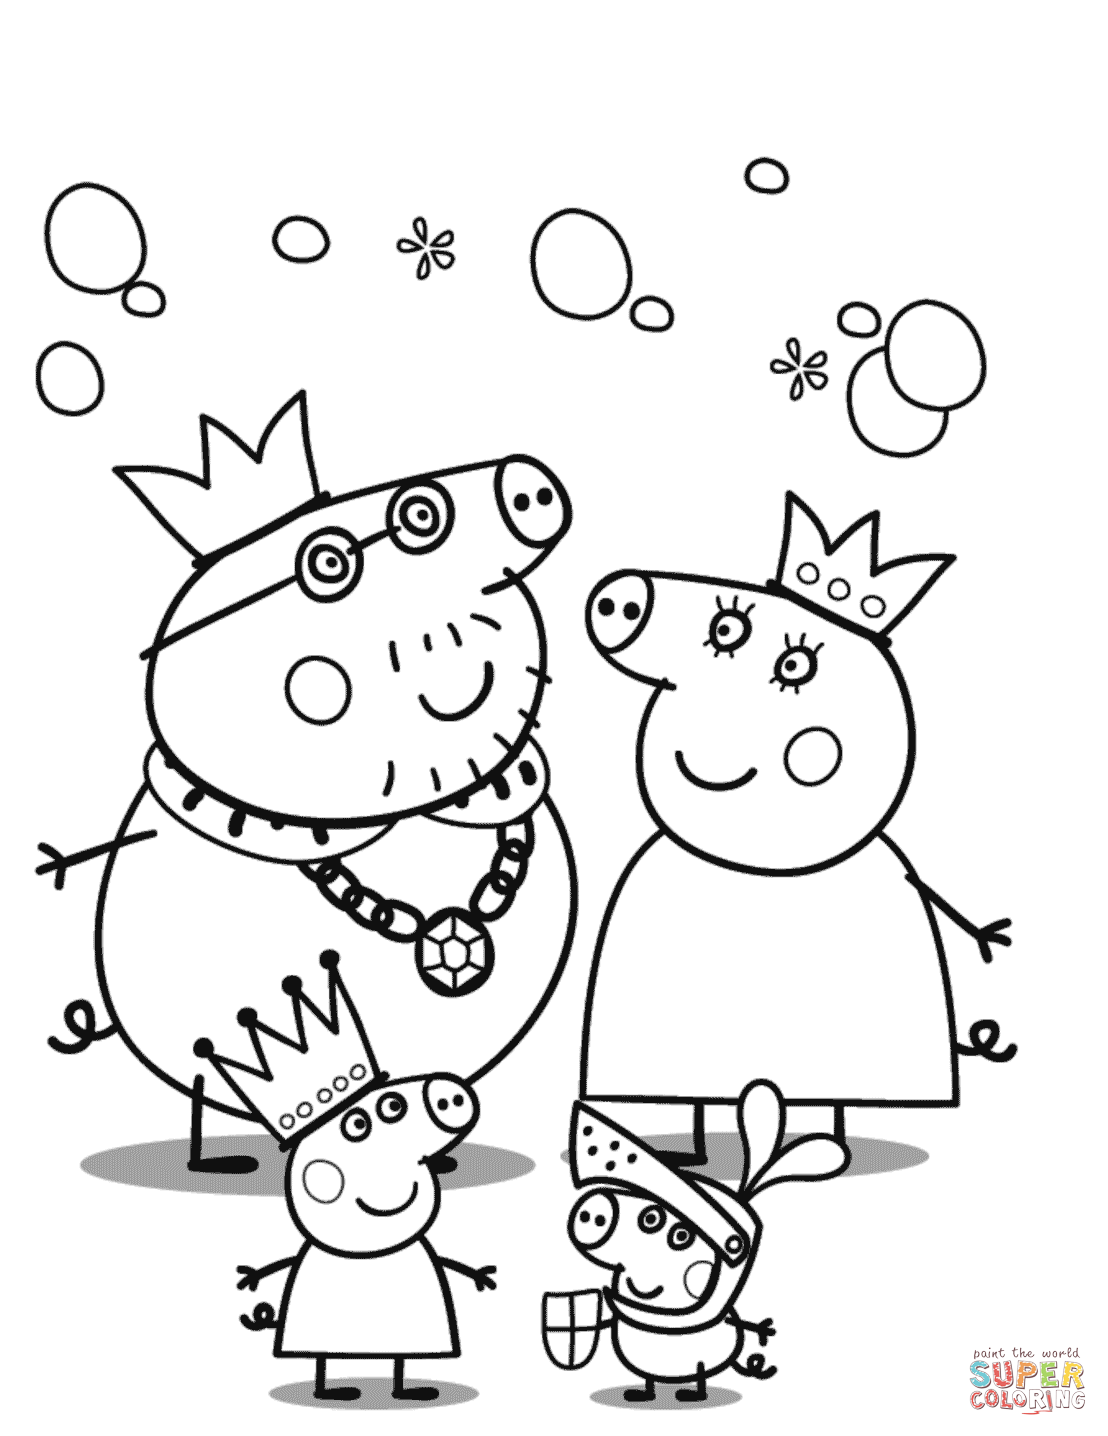 peppa pig colouring pages online peppa pig39s royal family coloring page free printable peppa online colouring pig pages